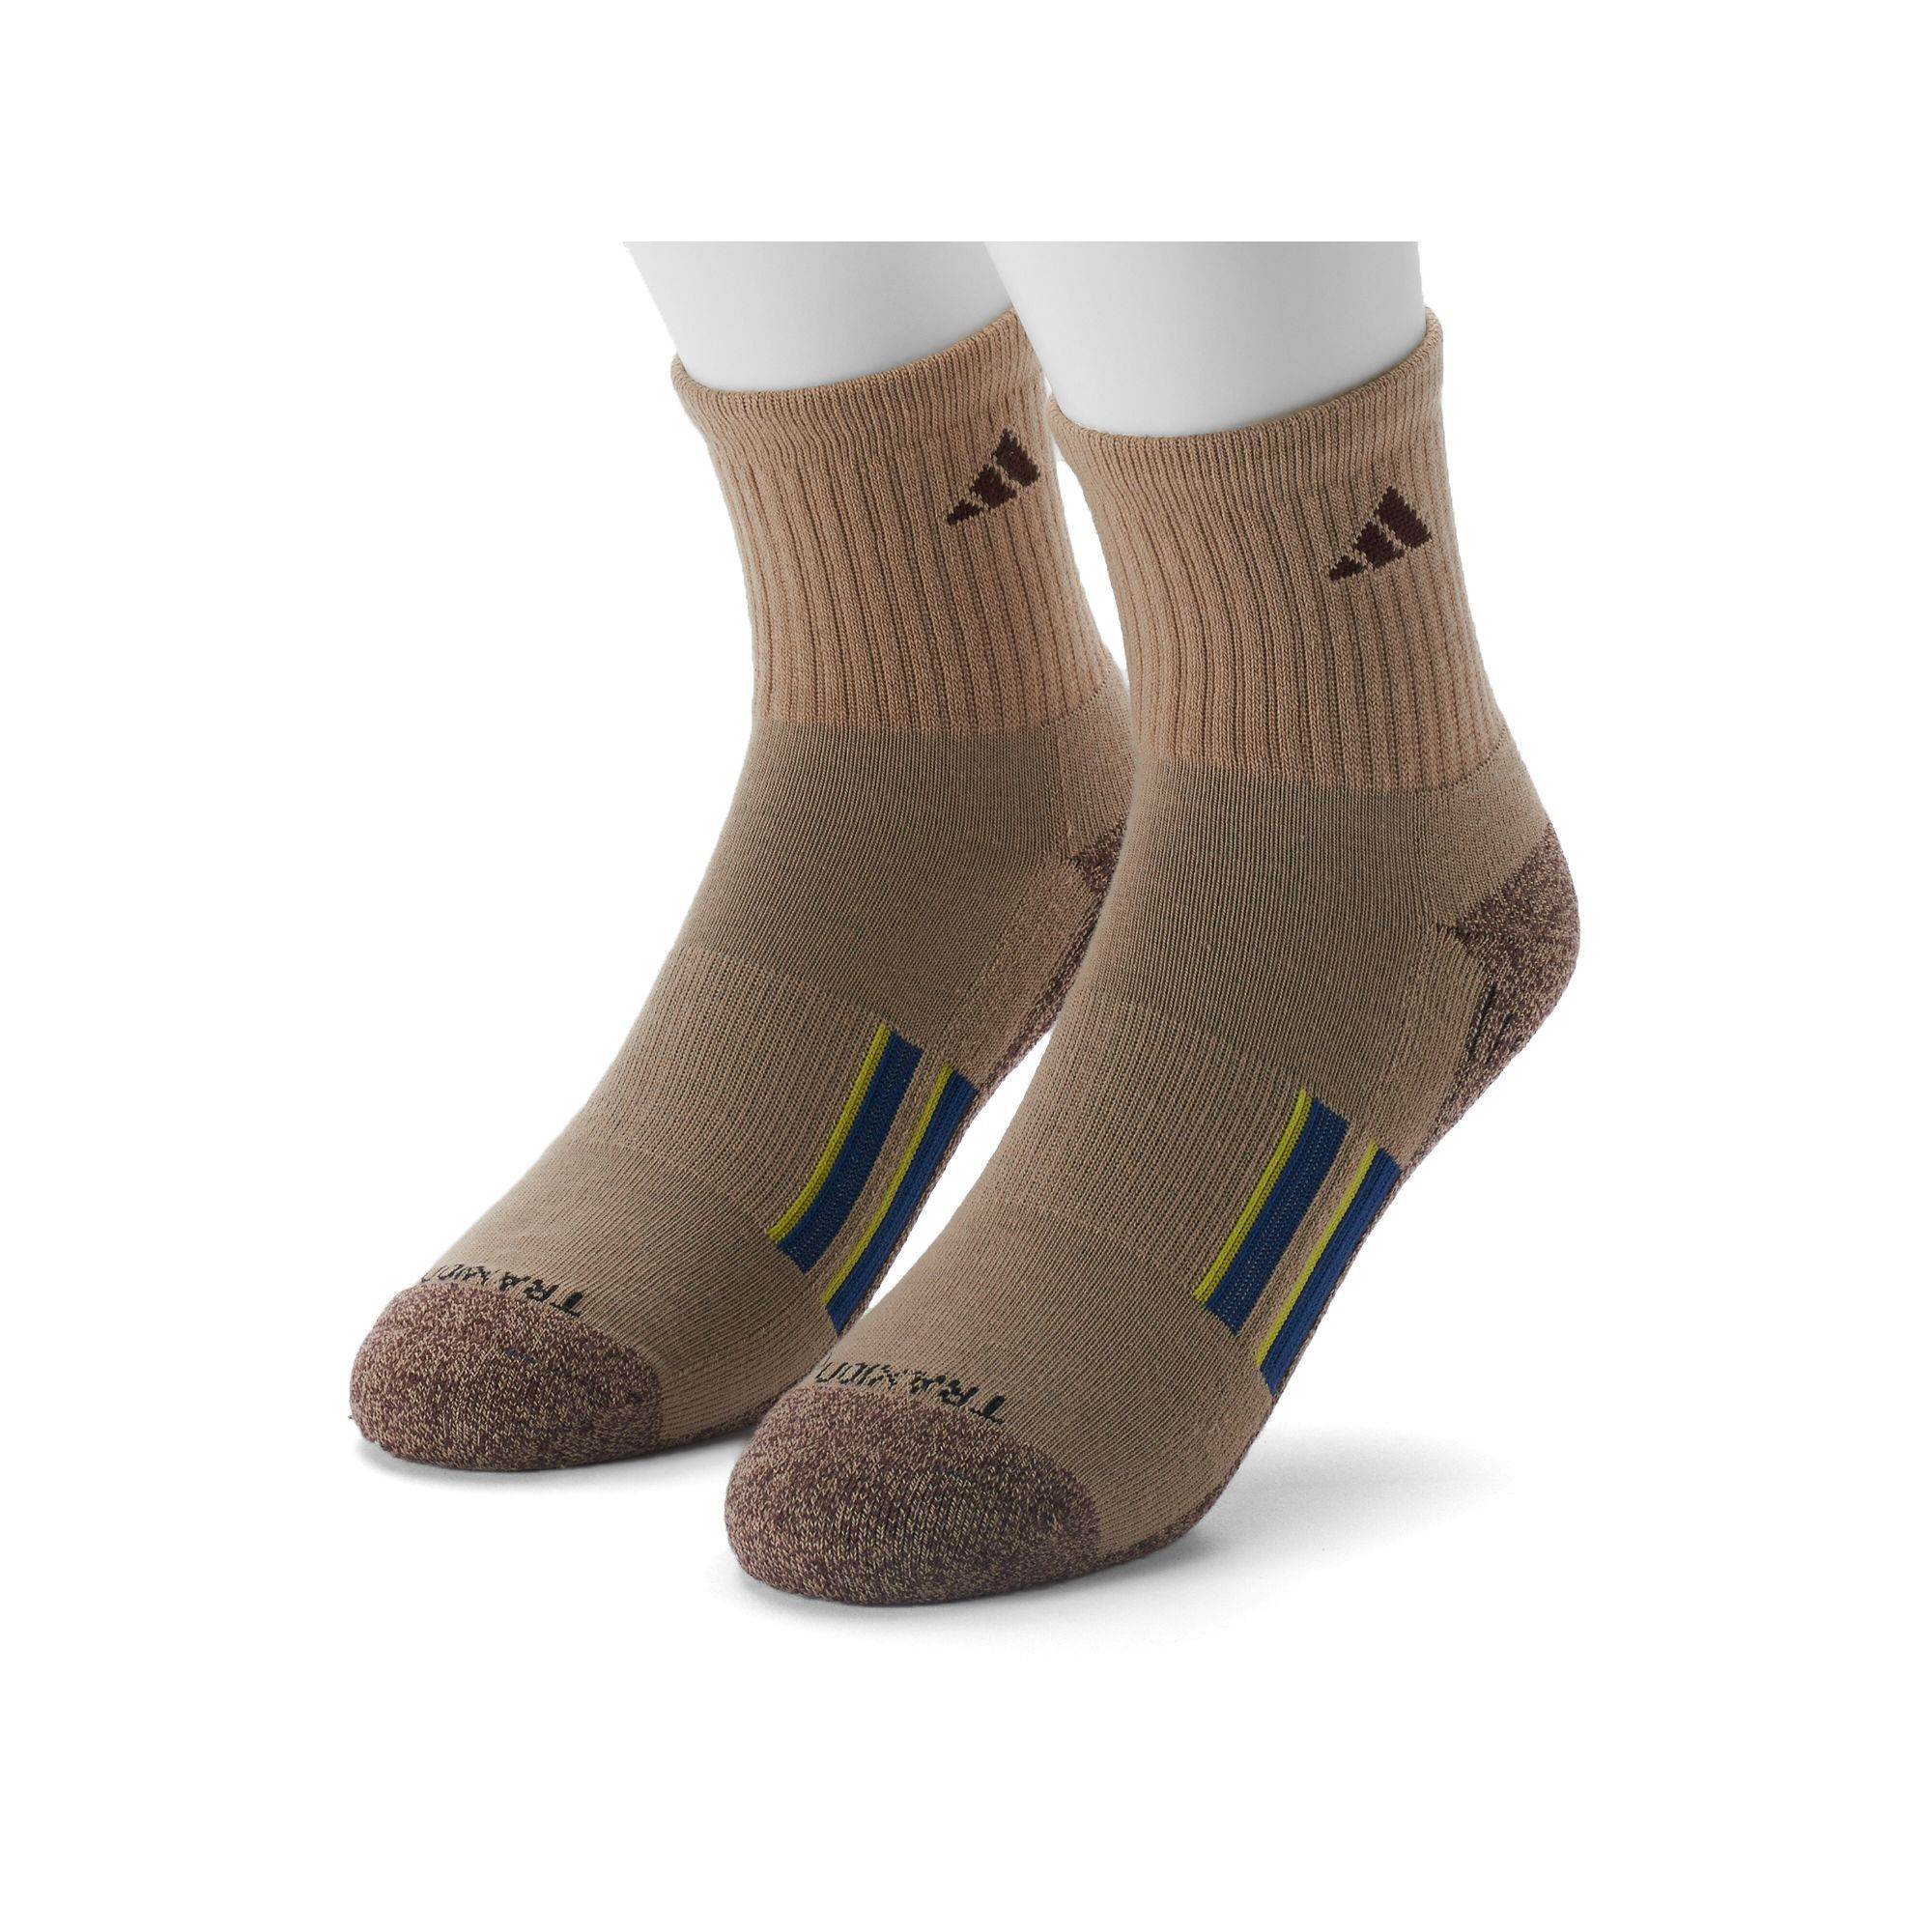 on sale 1be1c 0e16f Mens Adidas 2-pk. Climalite X Half-Crew Performance Socks, Size 6-12,  BeigGreen (BeigKhaki)